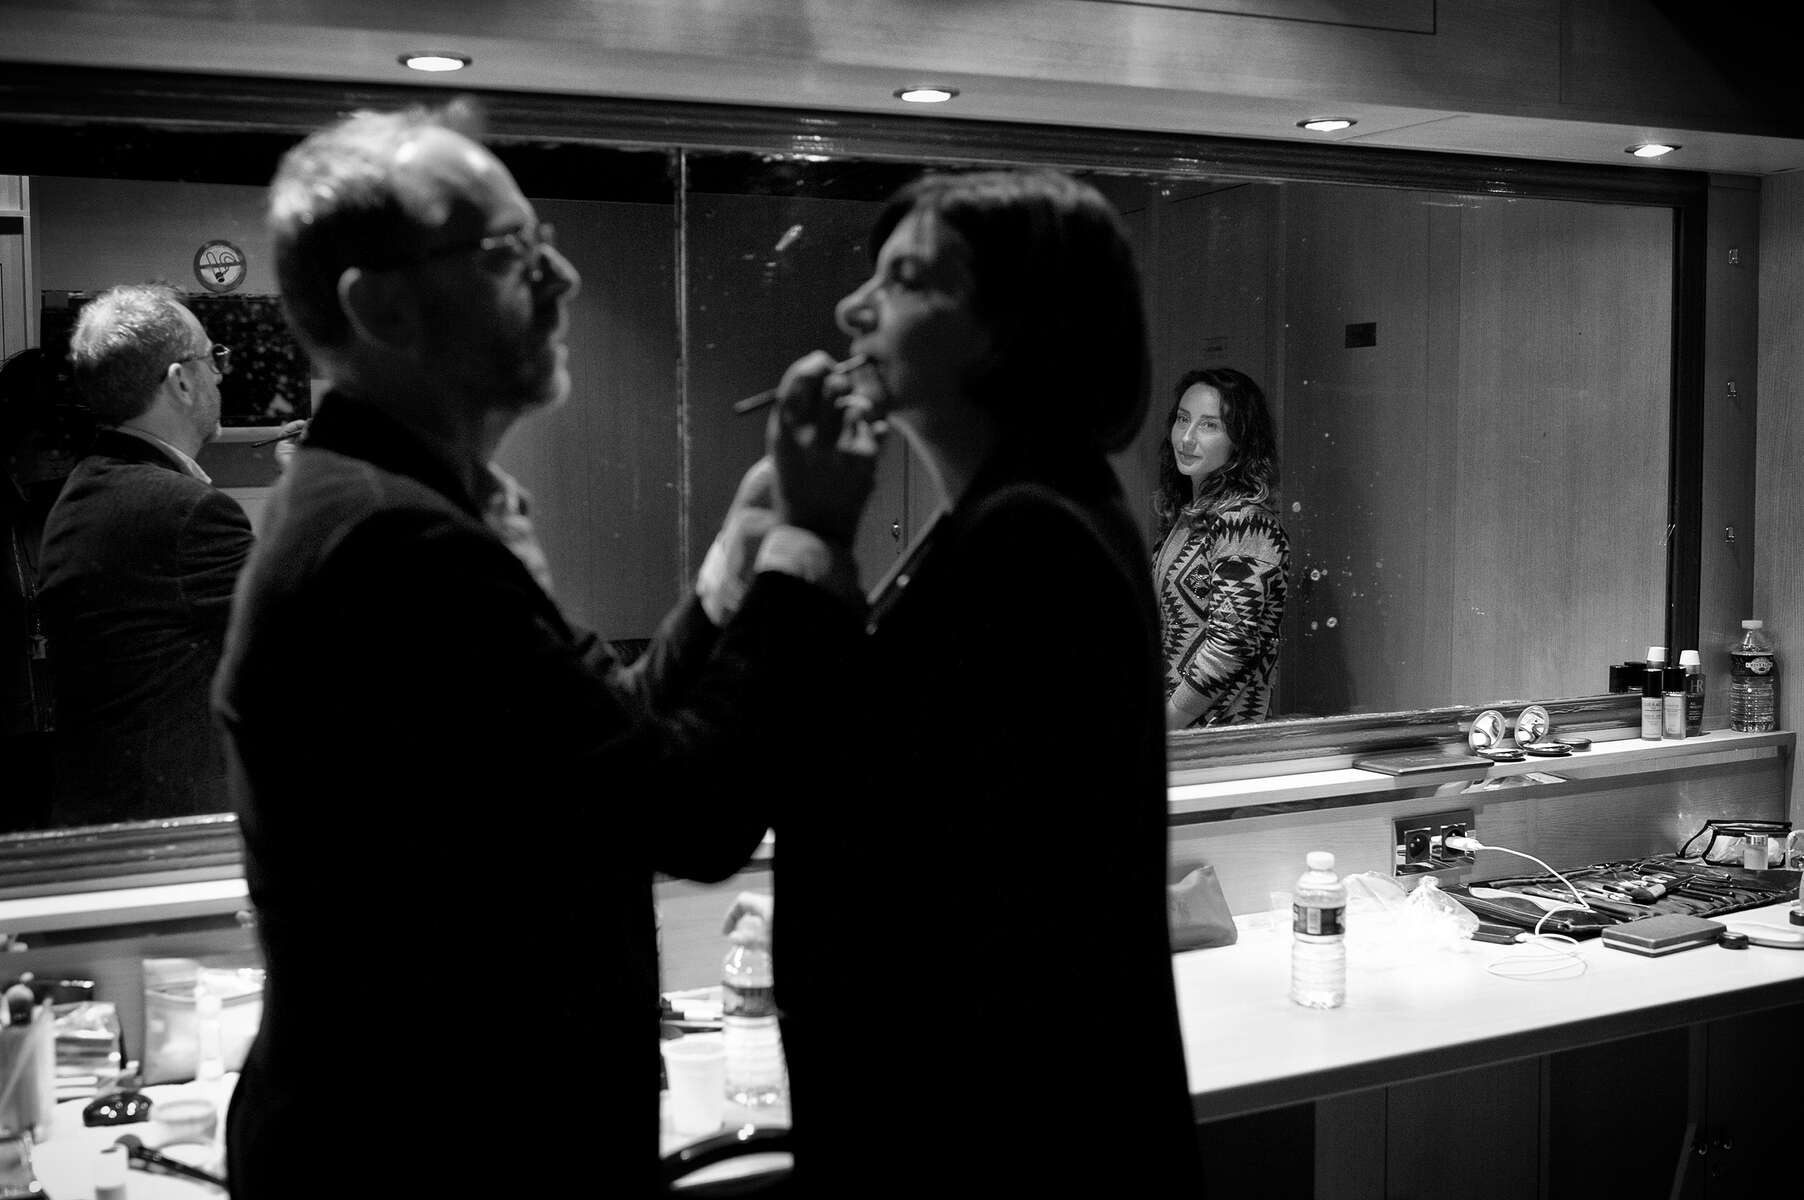 March 13, 2014.  PARIS, FRANCE- A makeup artist watches as a colleague touches up the lipstick of mayoral candidate Anne Hidalgo before her big rally at Paris' historic Cirque d'Hiver.  For the first time in France's history, Paris will have a woman as a mayor - either Socialist Anne Hidalgo or Center-Right Nathalie Kosciusko-Morizet.  Photo by Scout Tufankjian